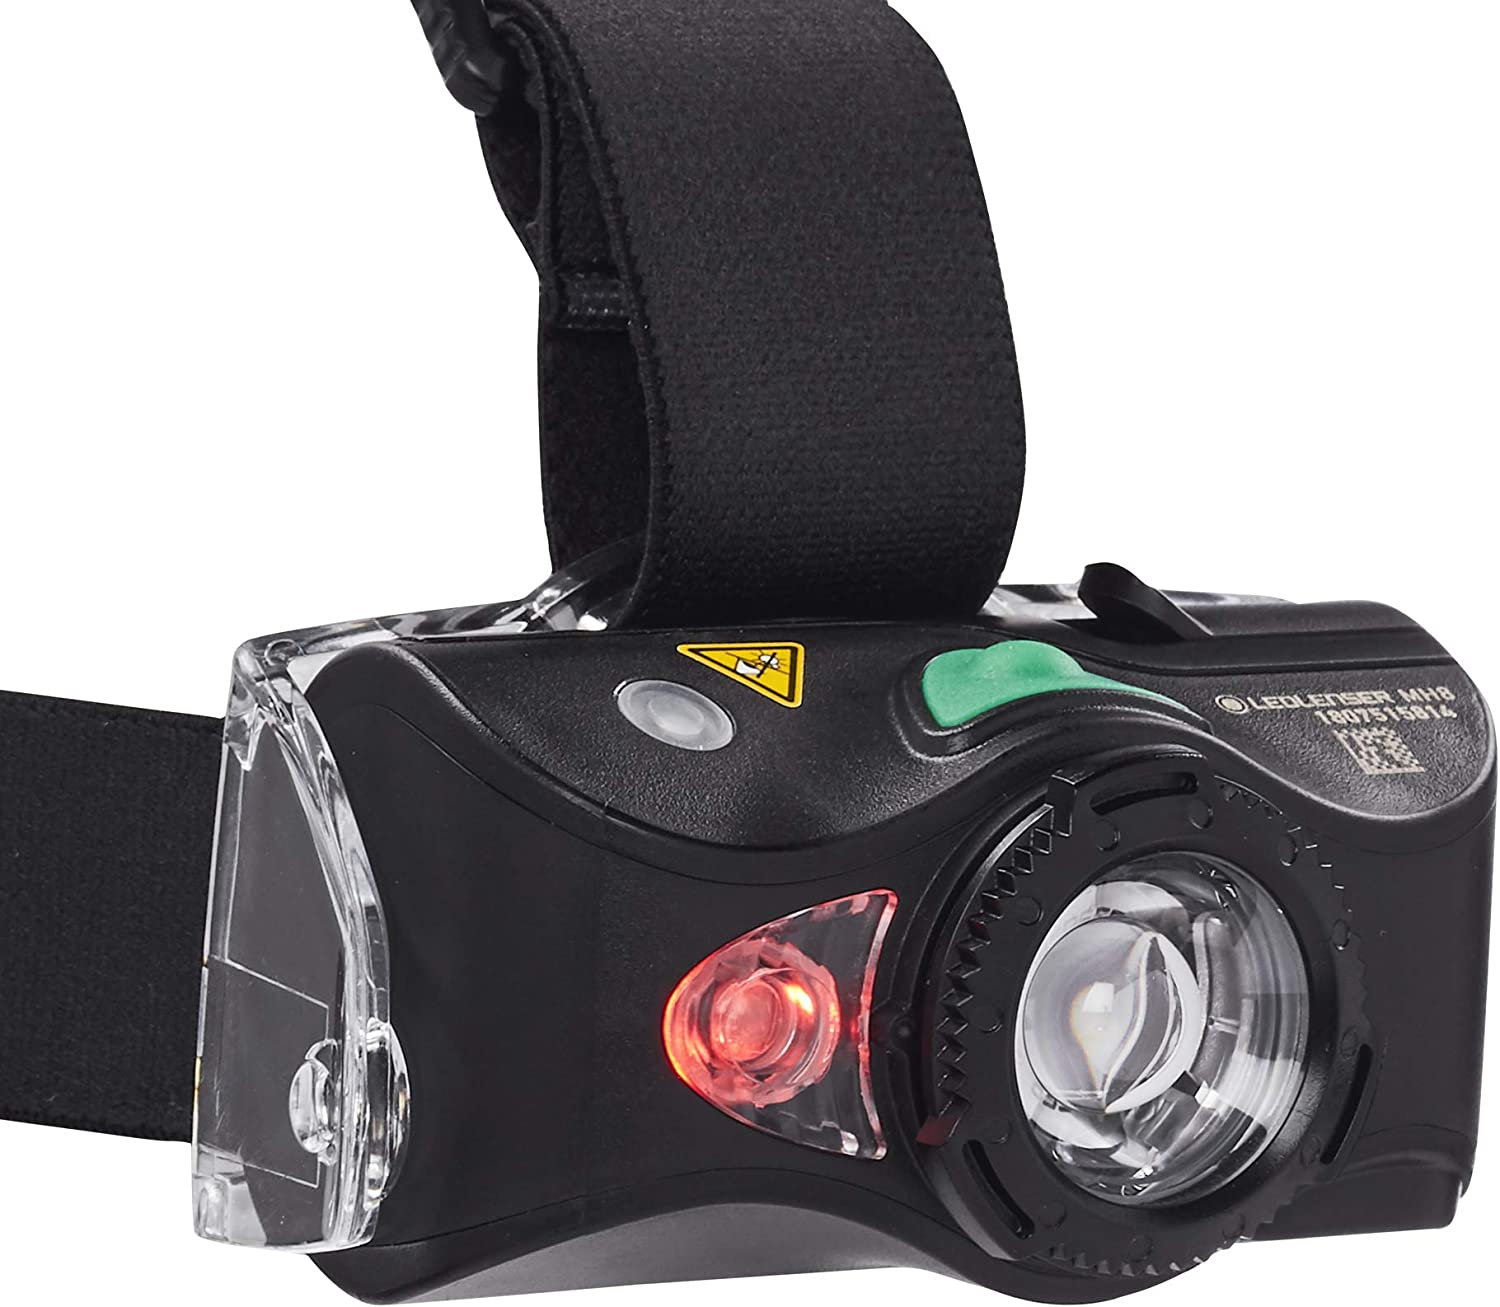 Hiking Backpacking MH8 Lightweight Rechargeable Headlamp with Removable Headstrap Camping Camo Ledlenser High Power LED 600 Lumens